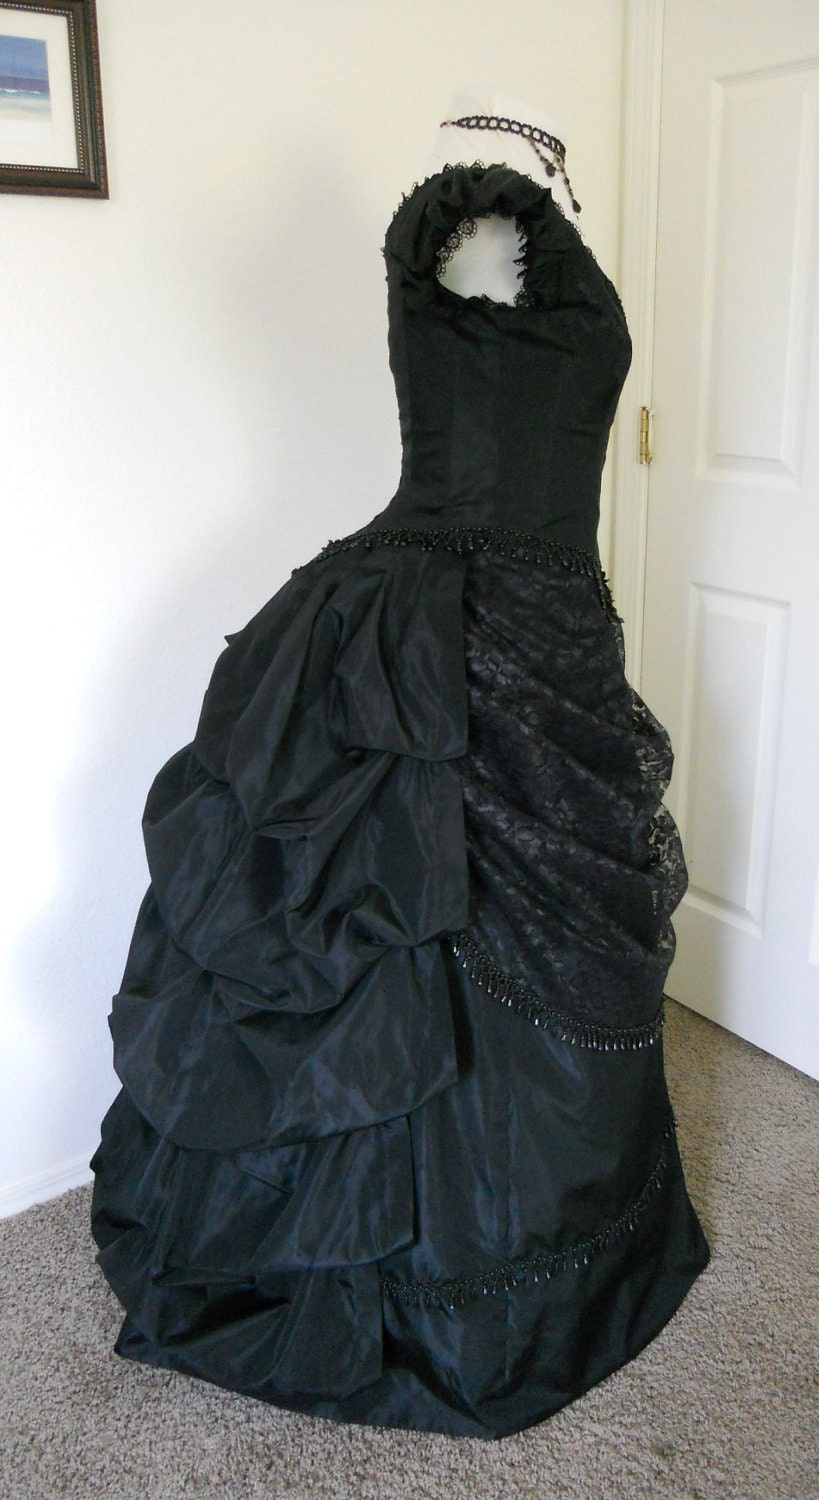 black victorian ball gown - photo #30